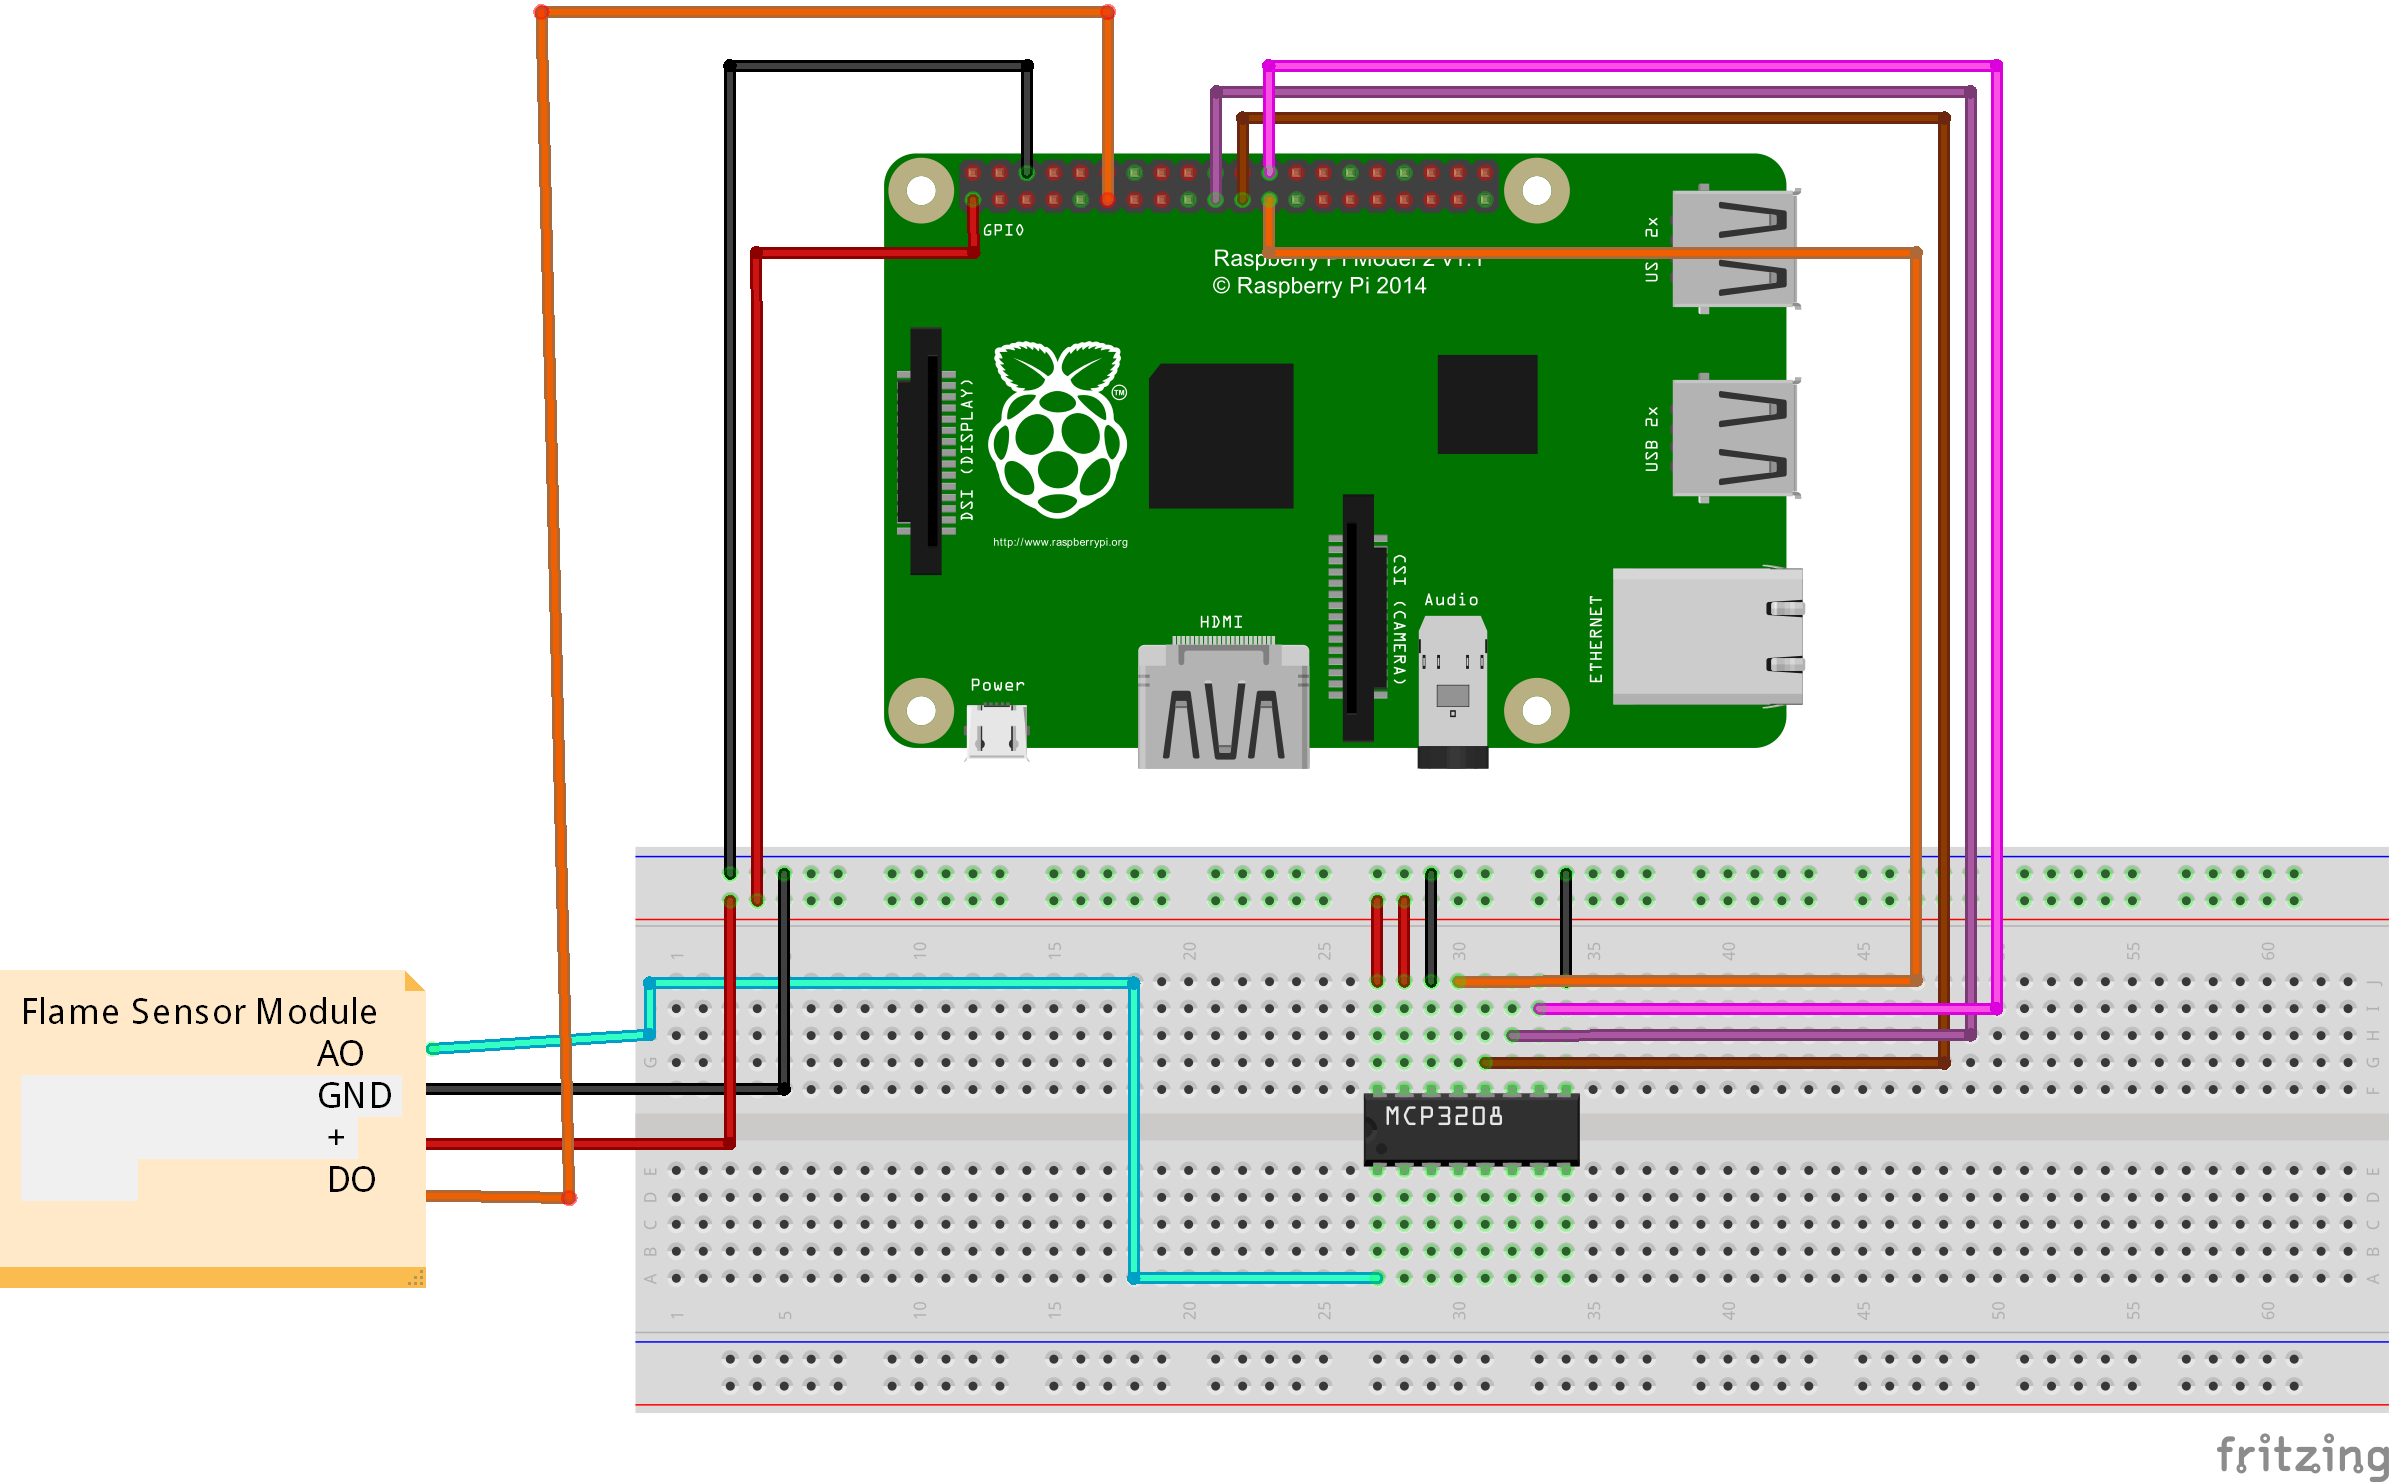 Design a flame detector through a raspberry pi board and